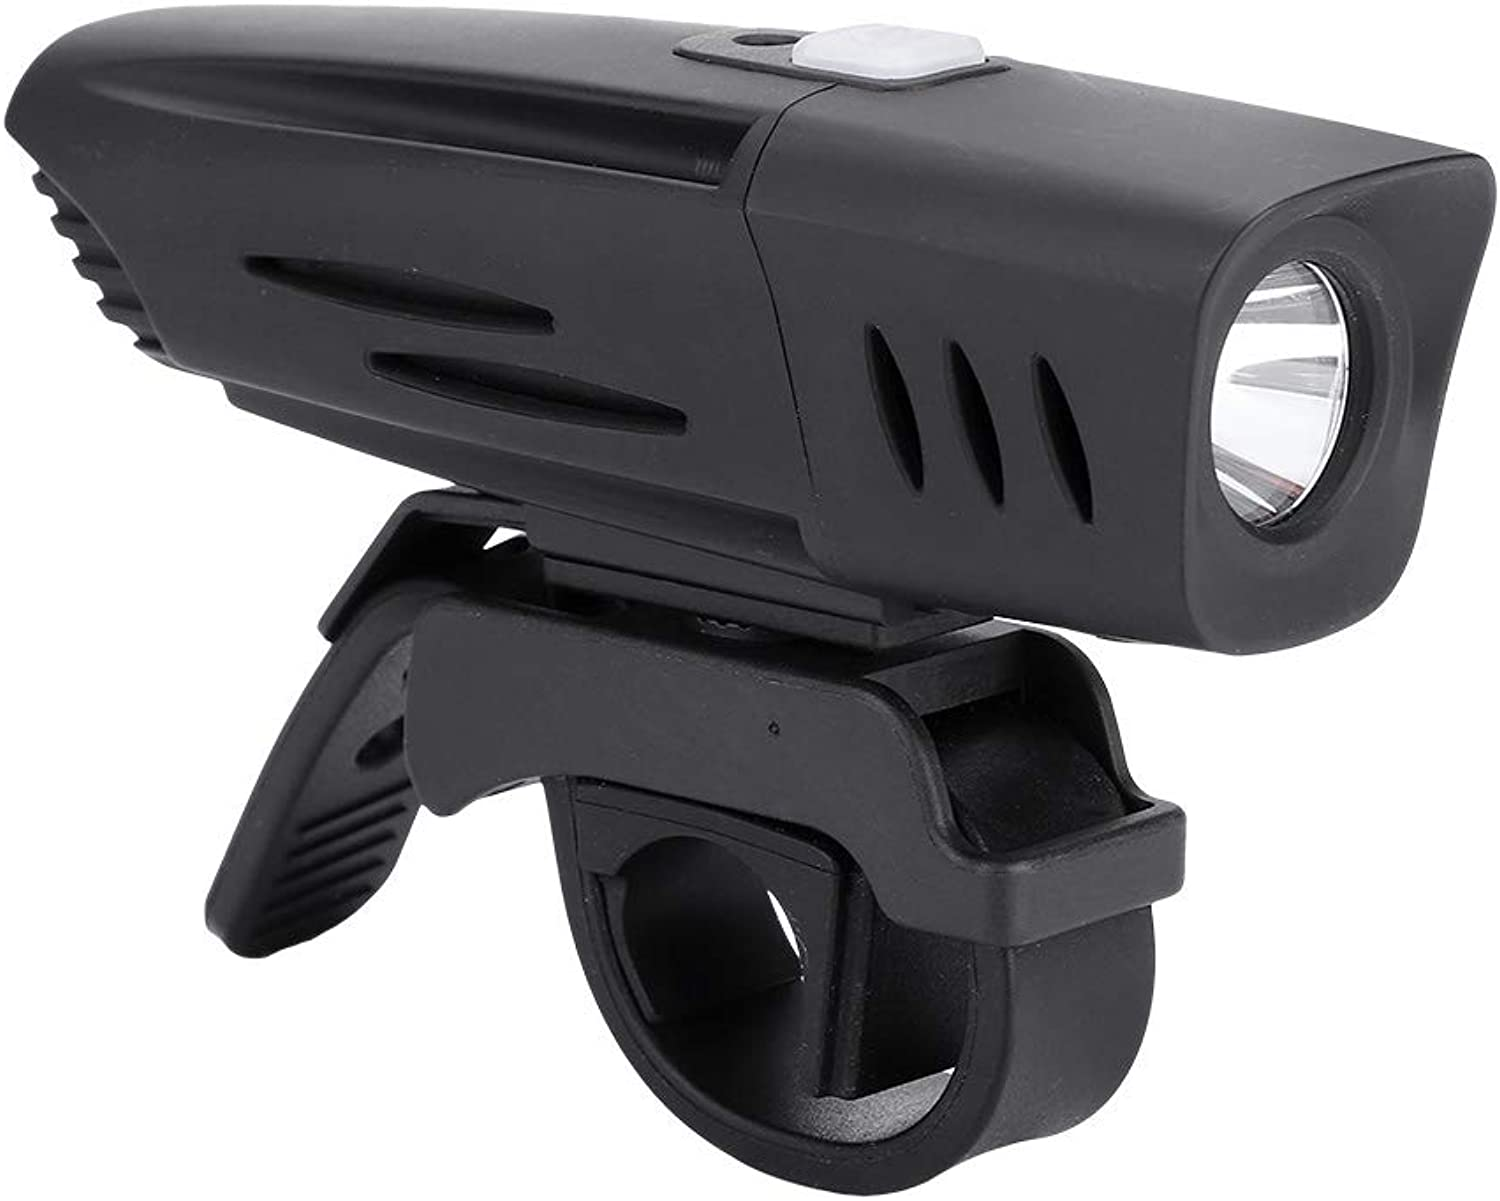 Bike Front Light, Waterpoof USB Rechargeable Battery Powered Bicycle Headlight with Mount USB Cable for Safety Cycling Road Mountain Bike